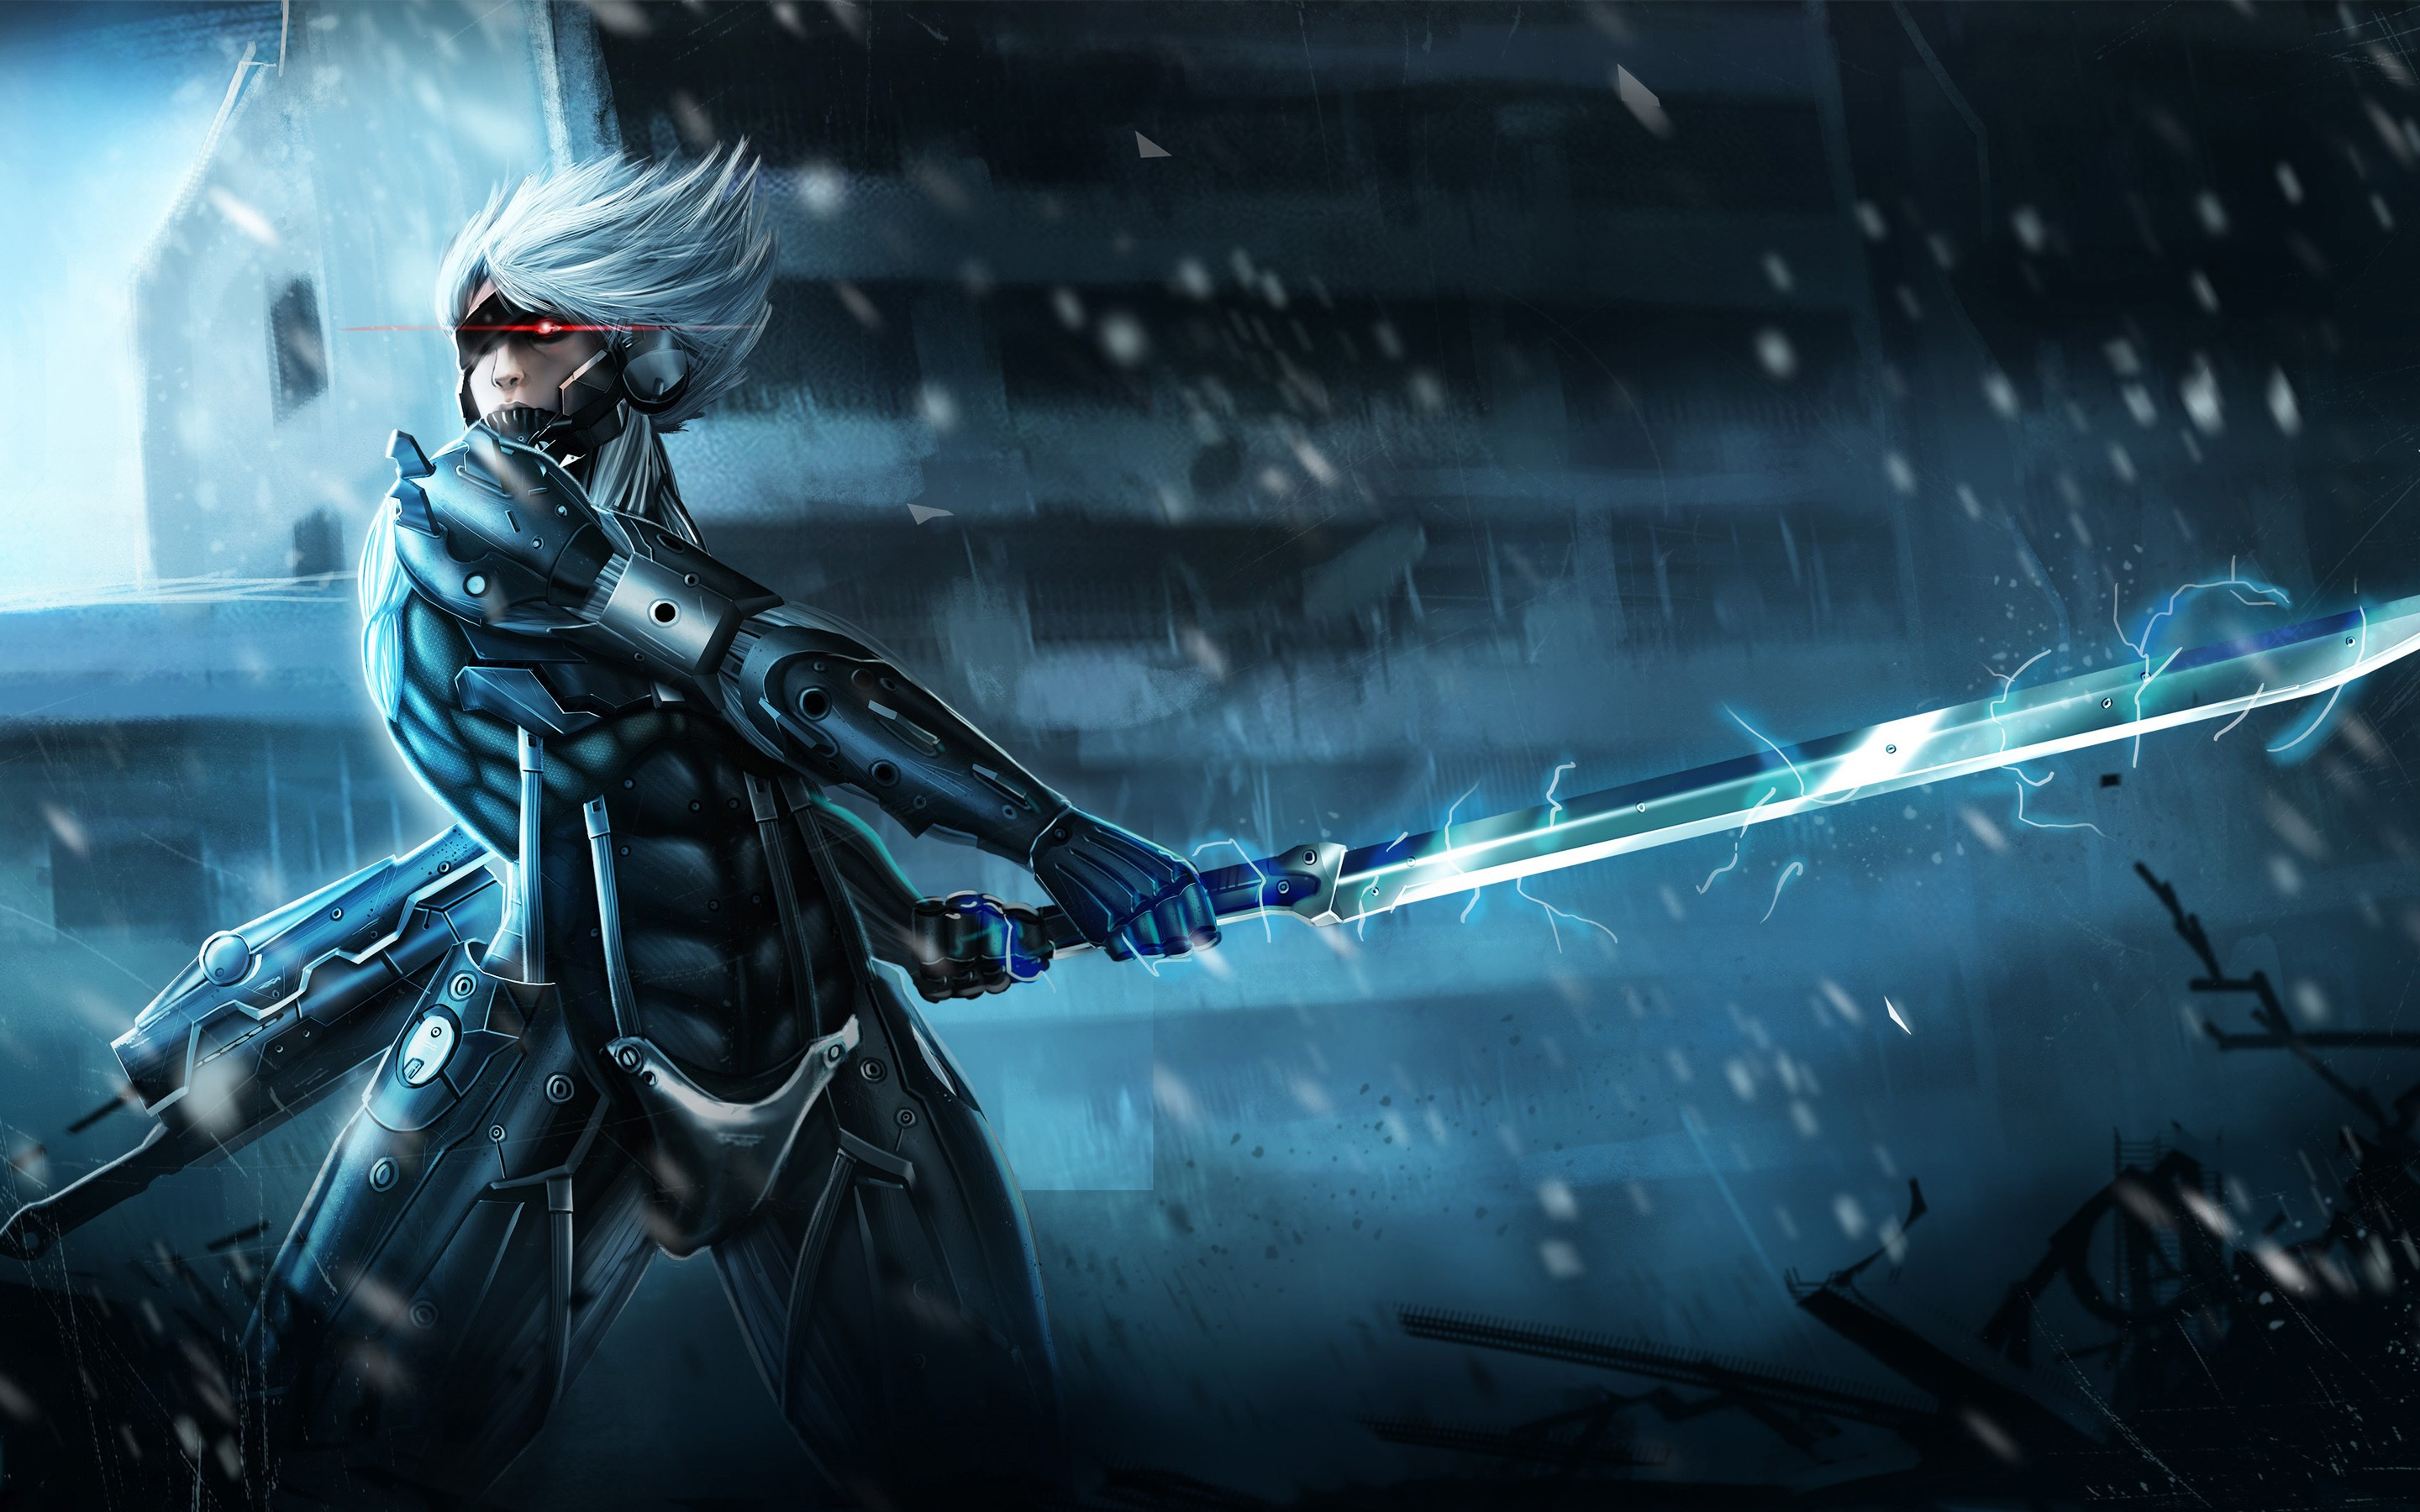 Metal gear rising raiden hd games 4k wallpapers images metal gear rising raiden voltagebd